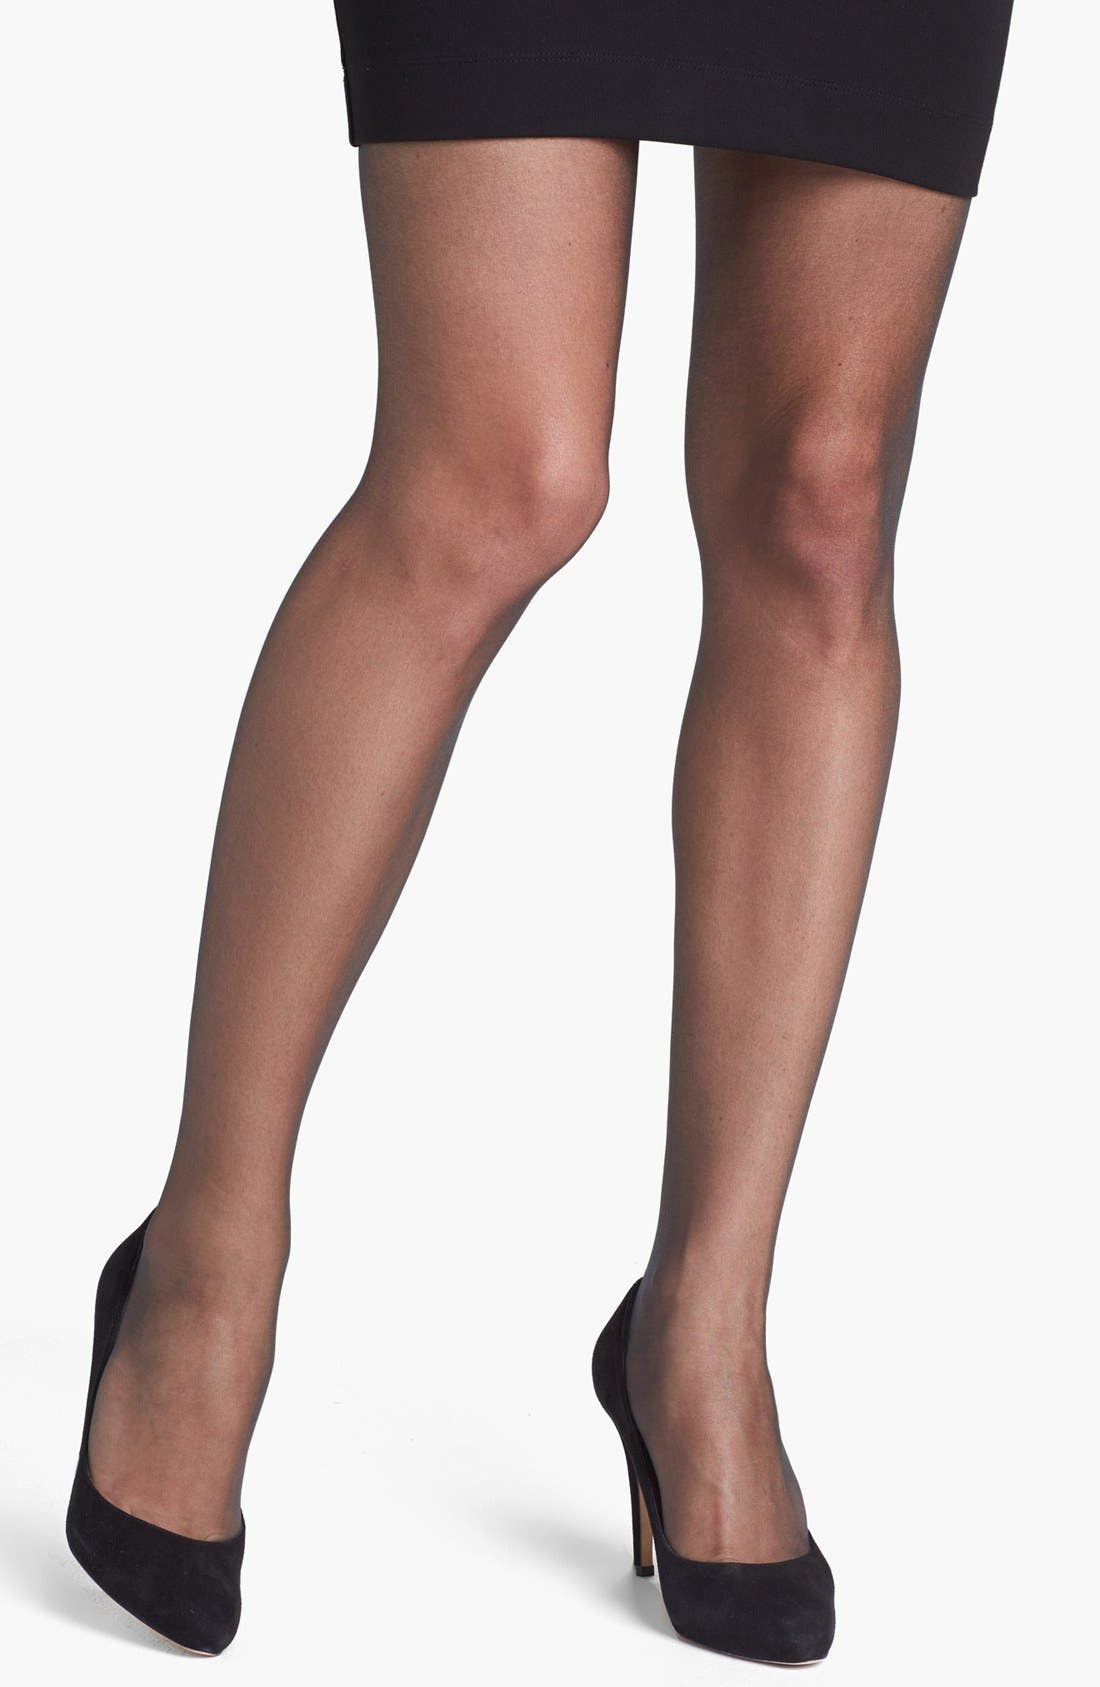 'Infinite Sheer' Control Top Pantyhose,                             Main thumbnail 1, color,                             Black